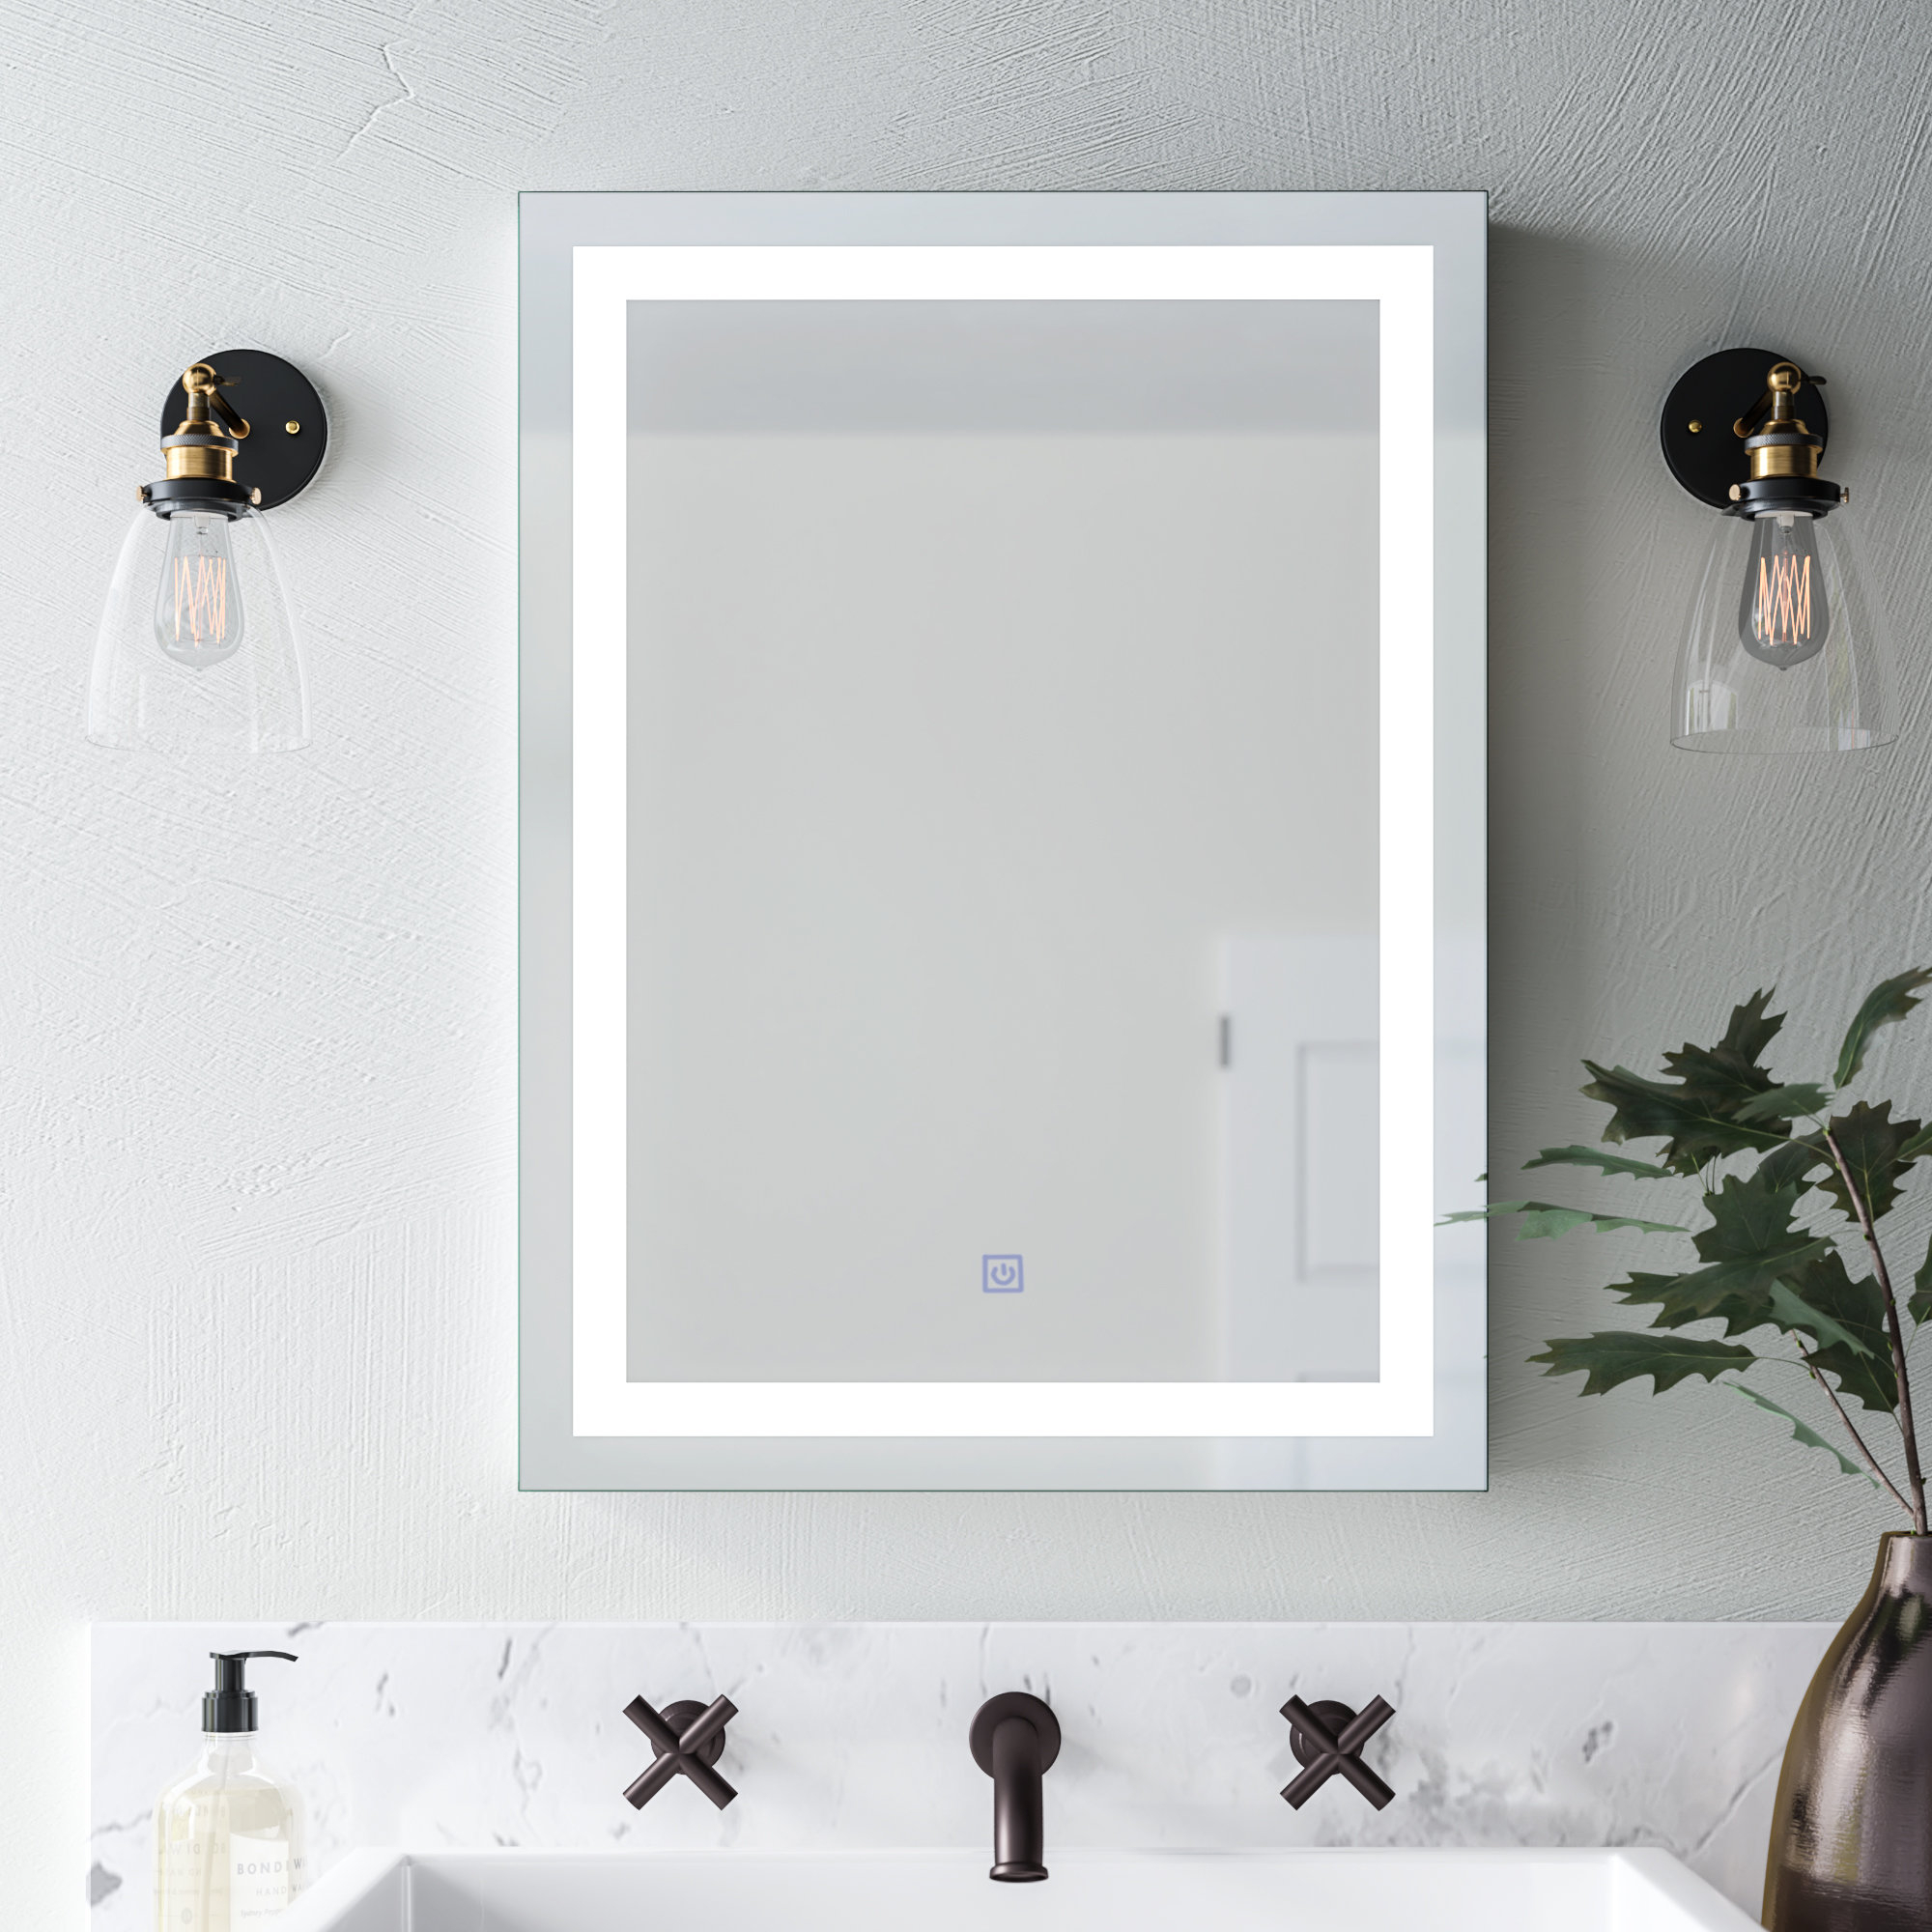 Dining Room Mirror | Wayfair Throughout Hilde Traditional Beveled Bathroom Mirrors (Image 8 of 20)